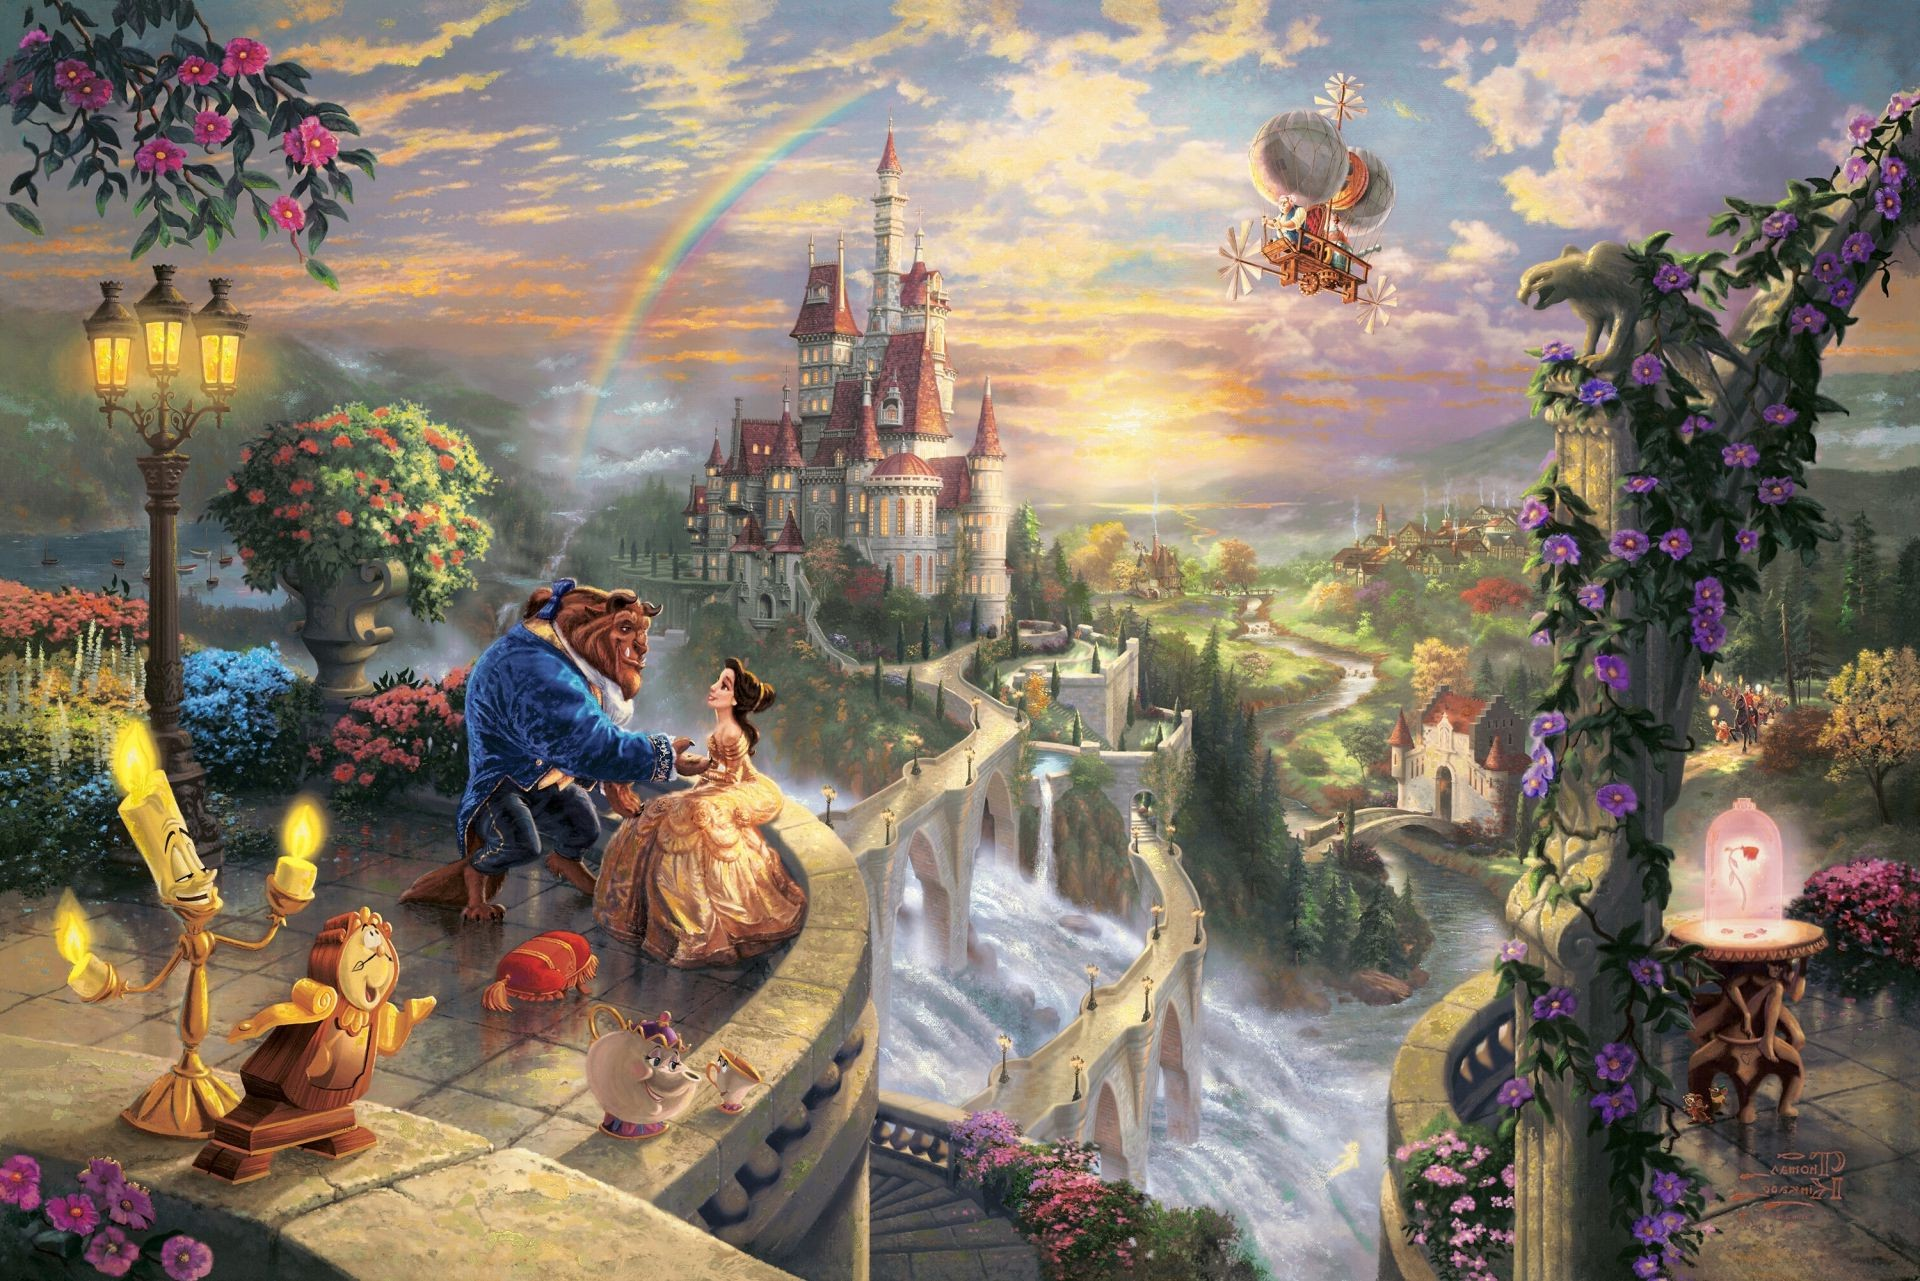 Thomas kinkade the disney dreams collection beauty and the 1920x1281